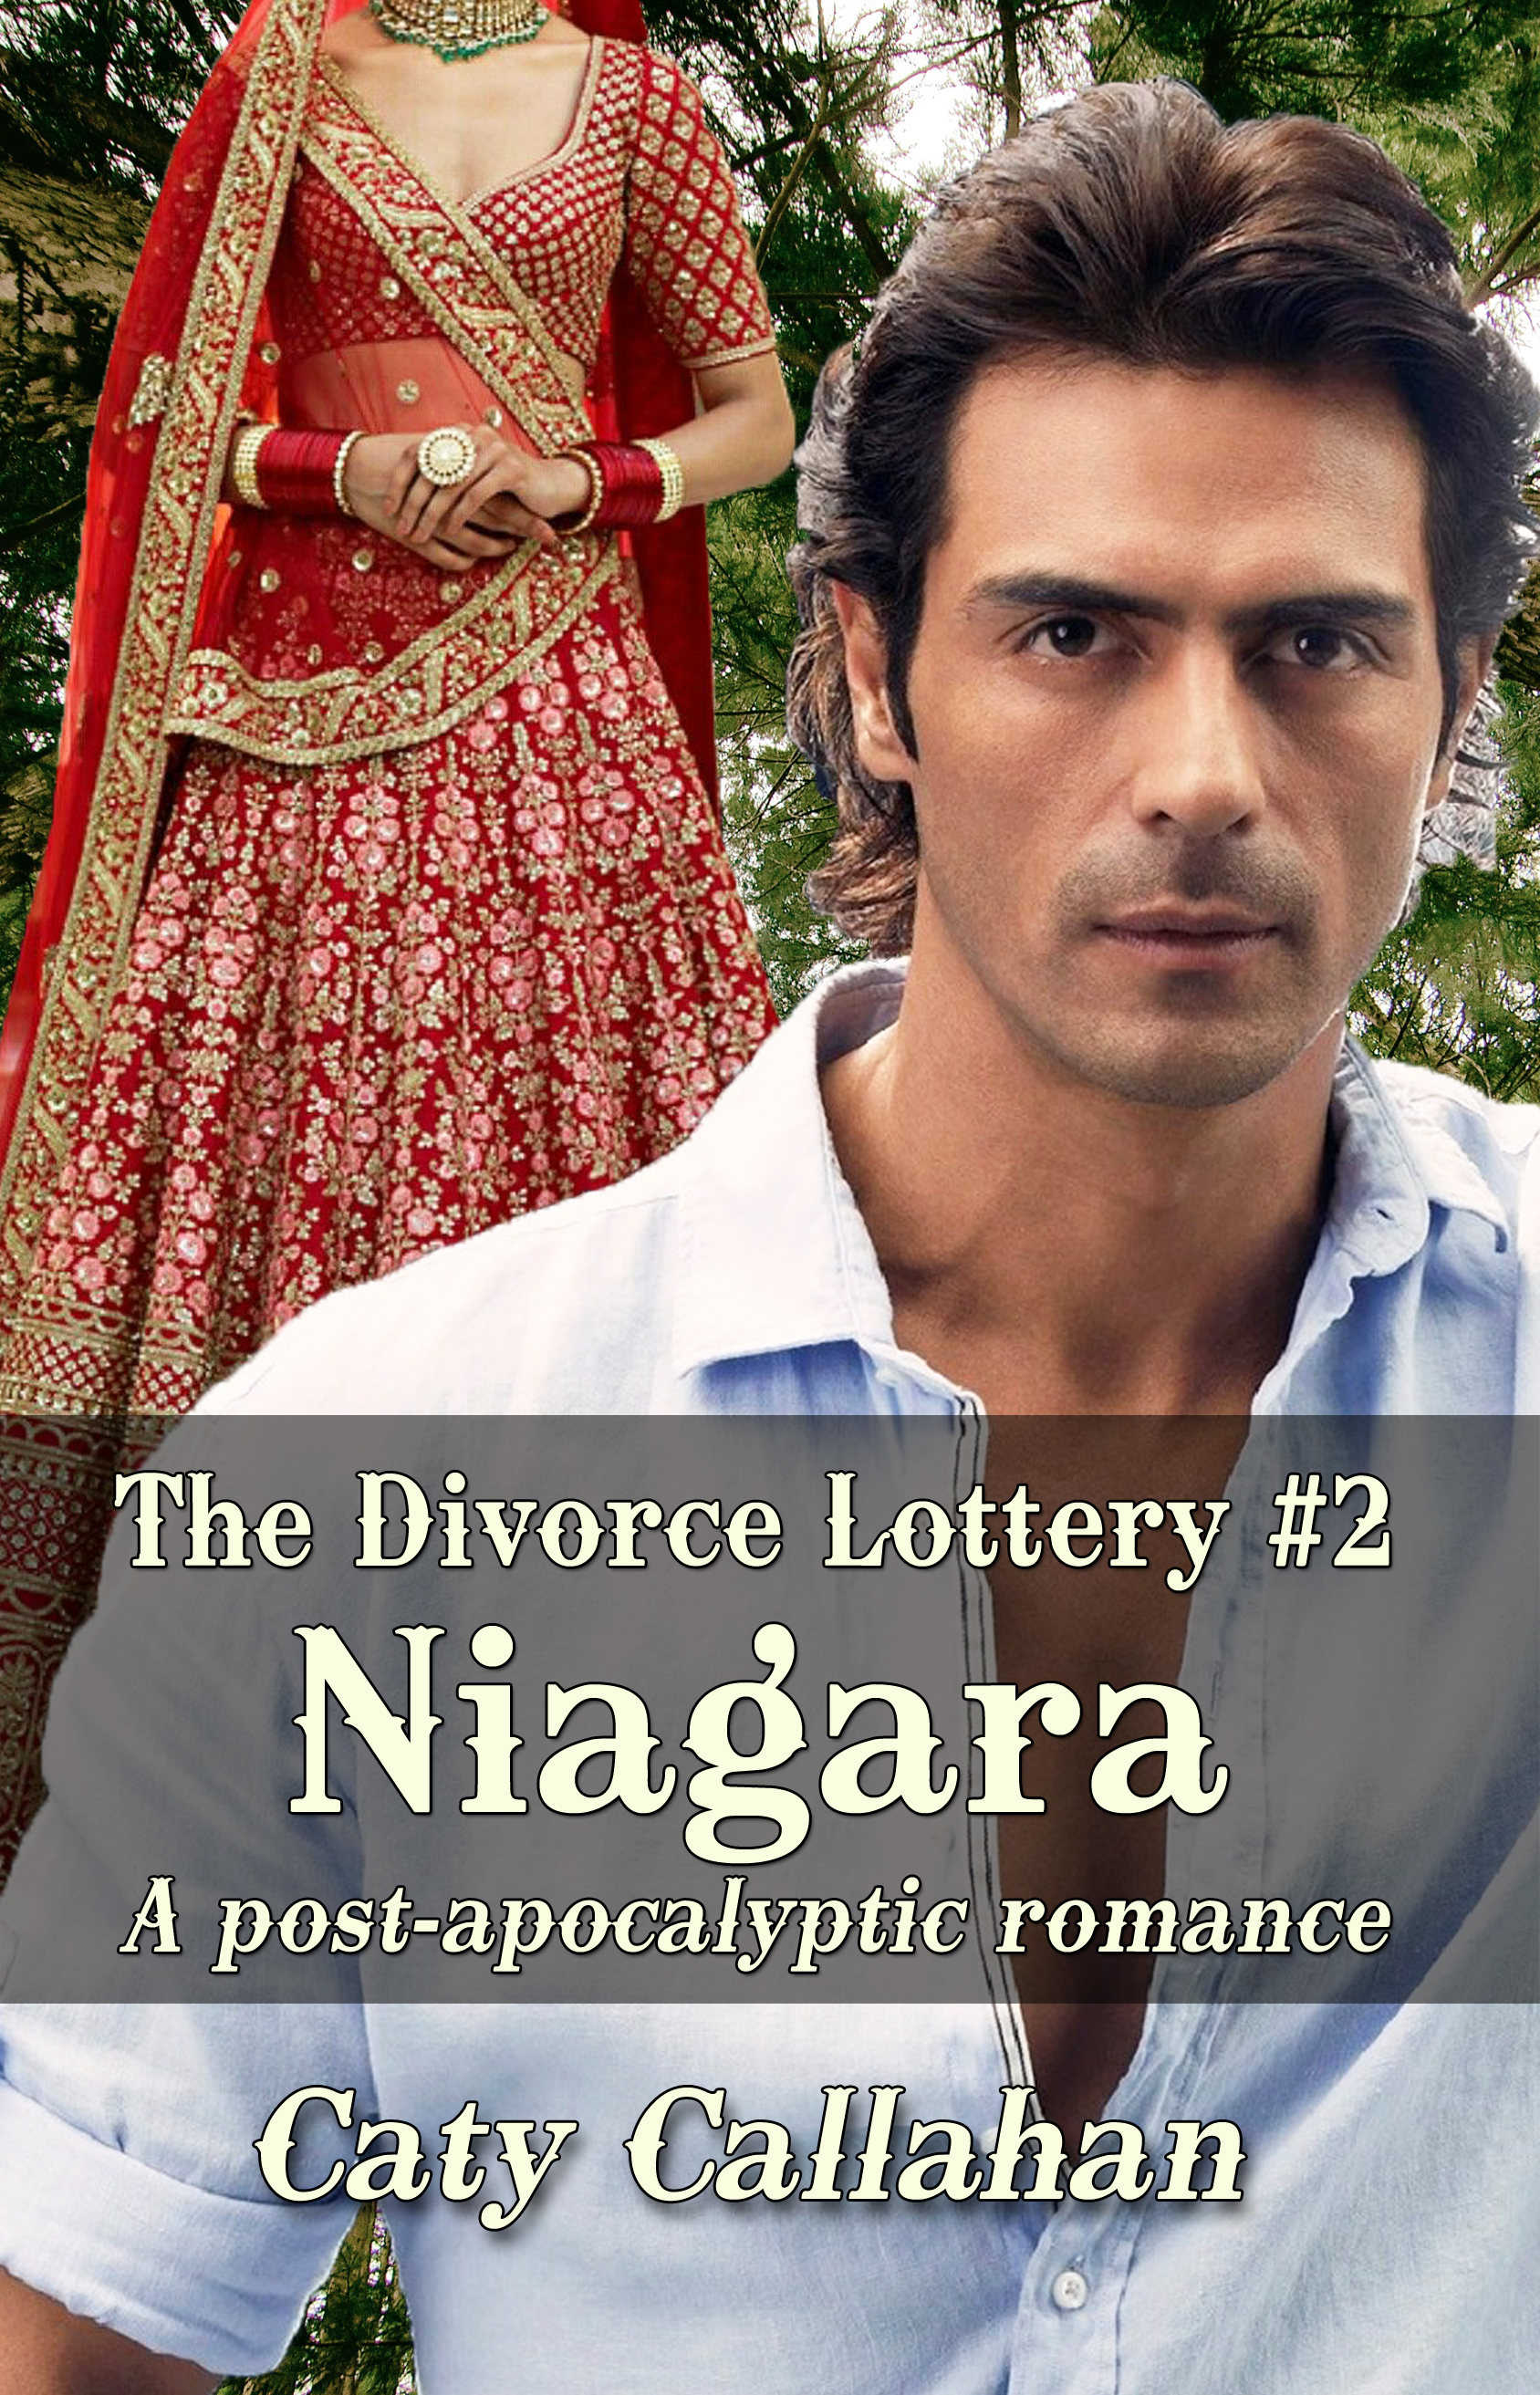 Divorce Lottery 2 Niagara | Sweet Christian romances for couples